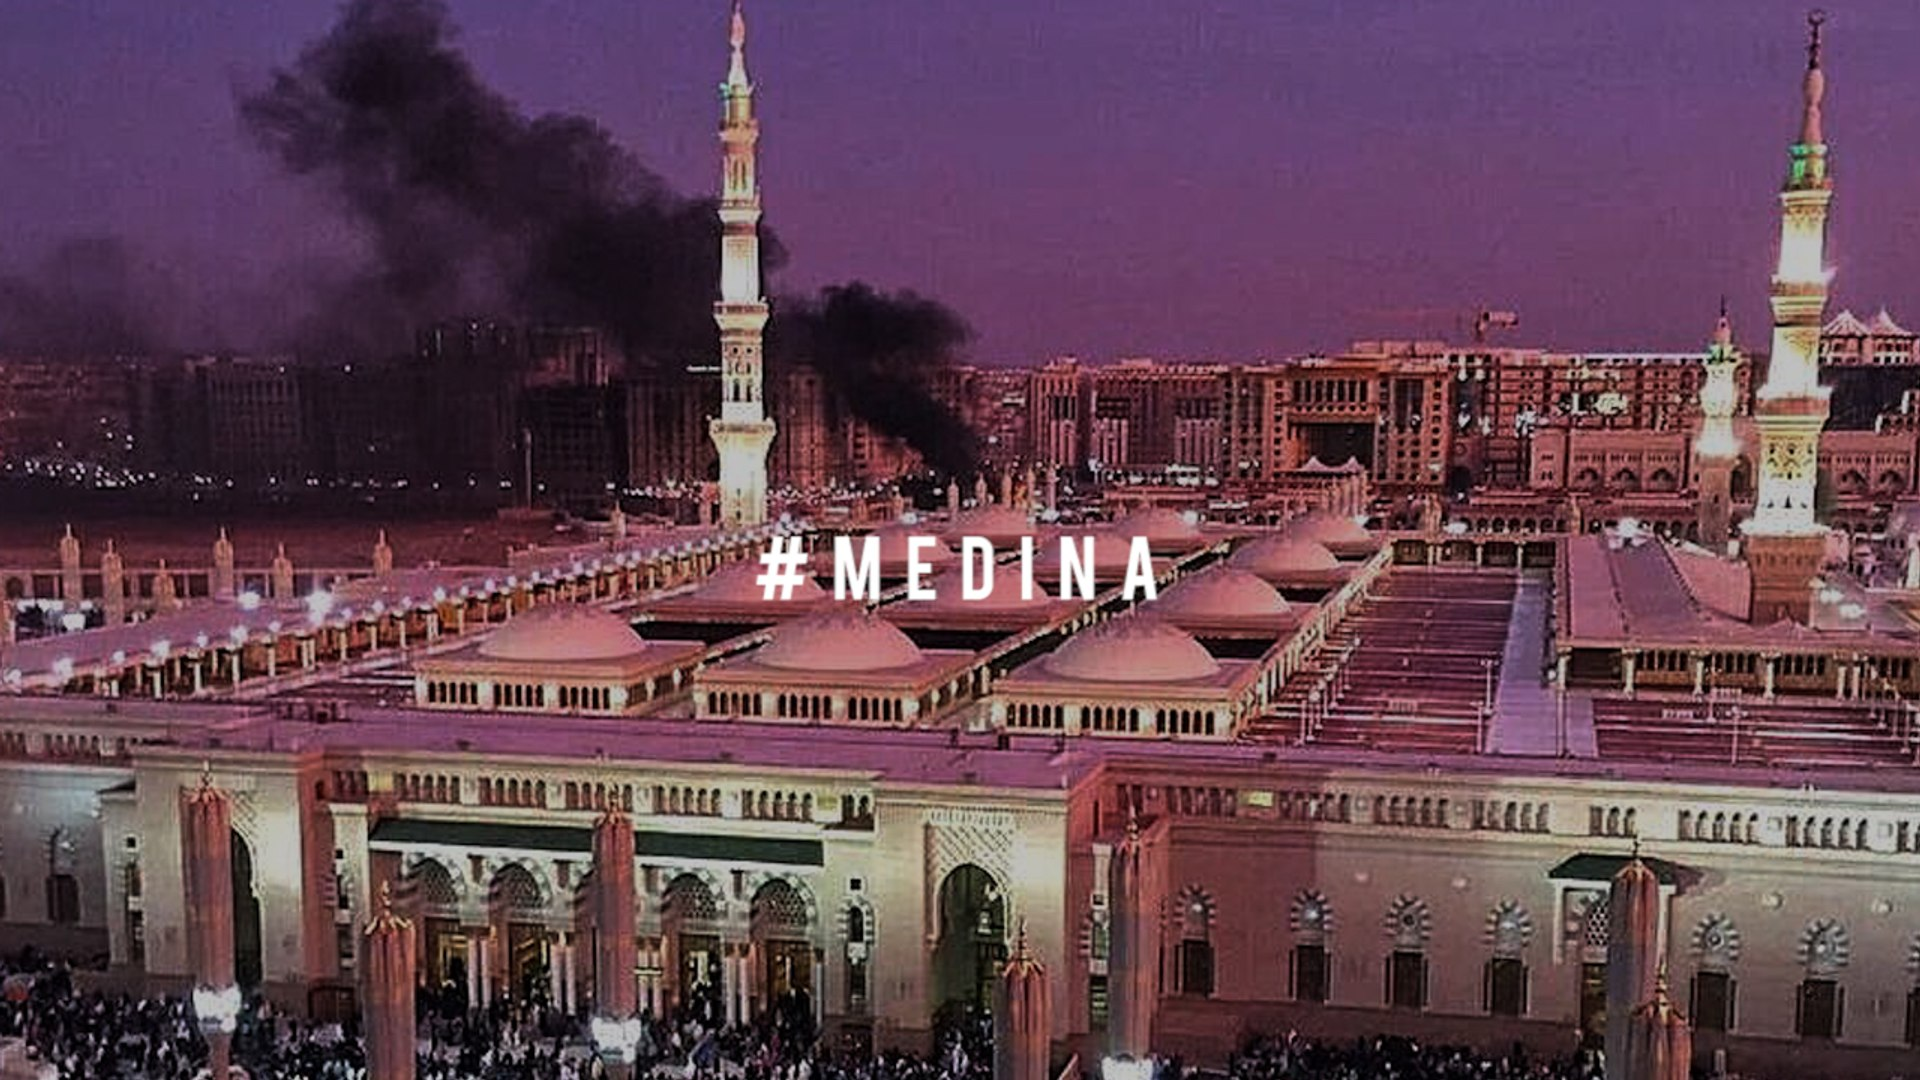 Suicide bombing in holy city of Medina